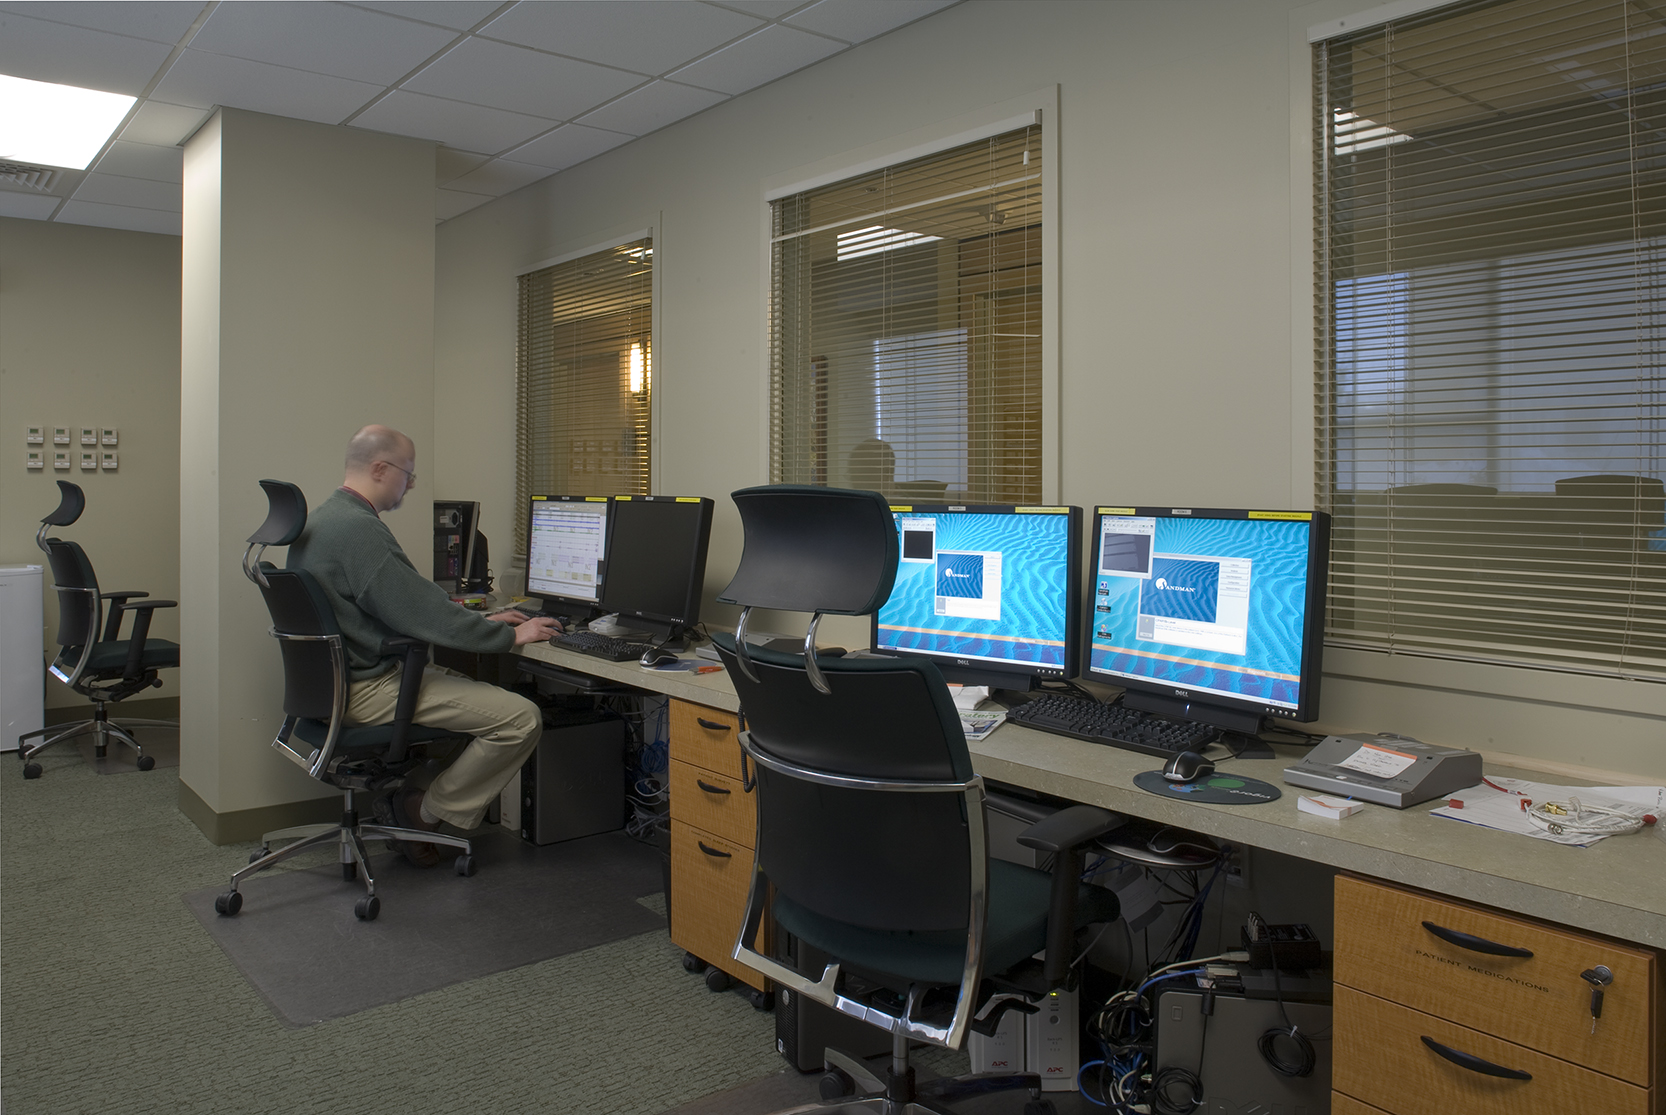 Control room with visual supervision of the central corridor